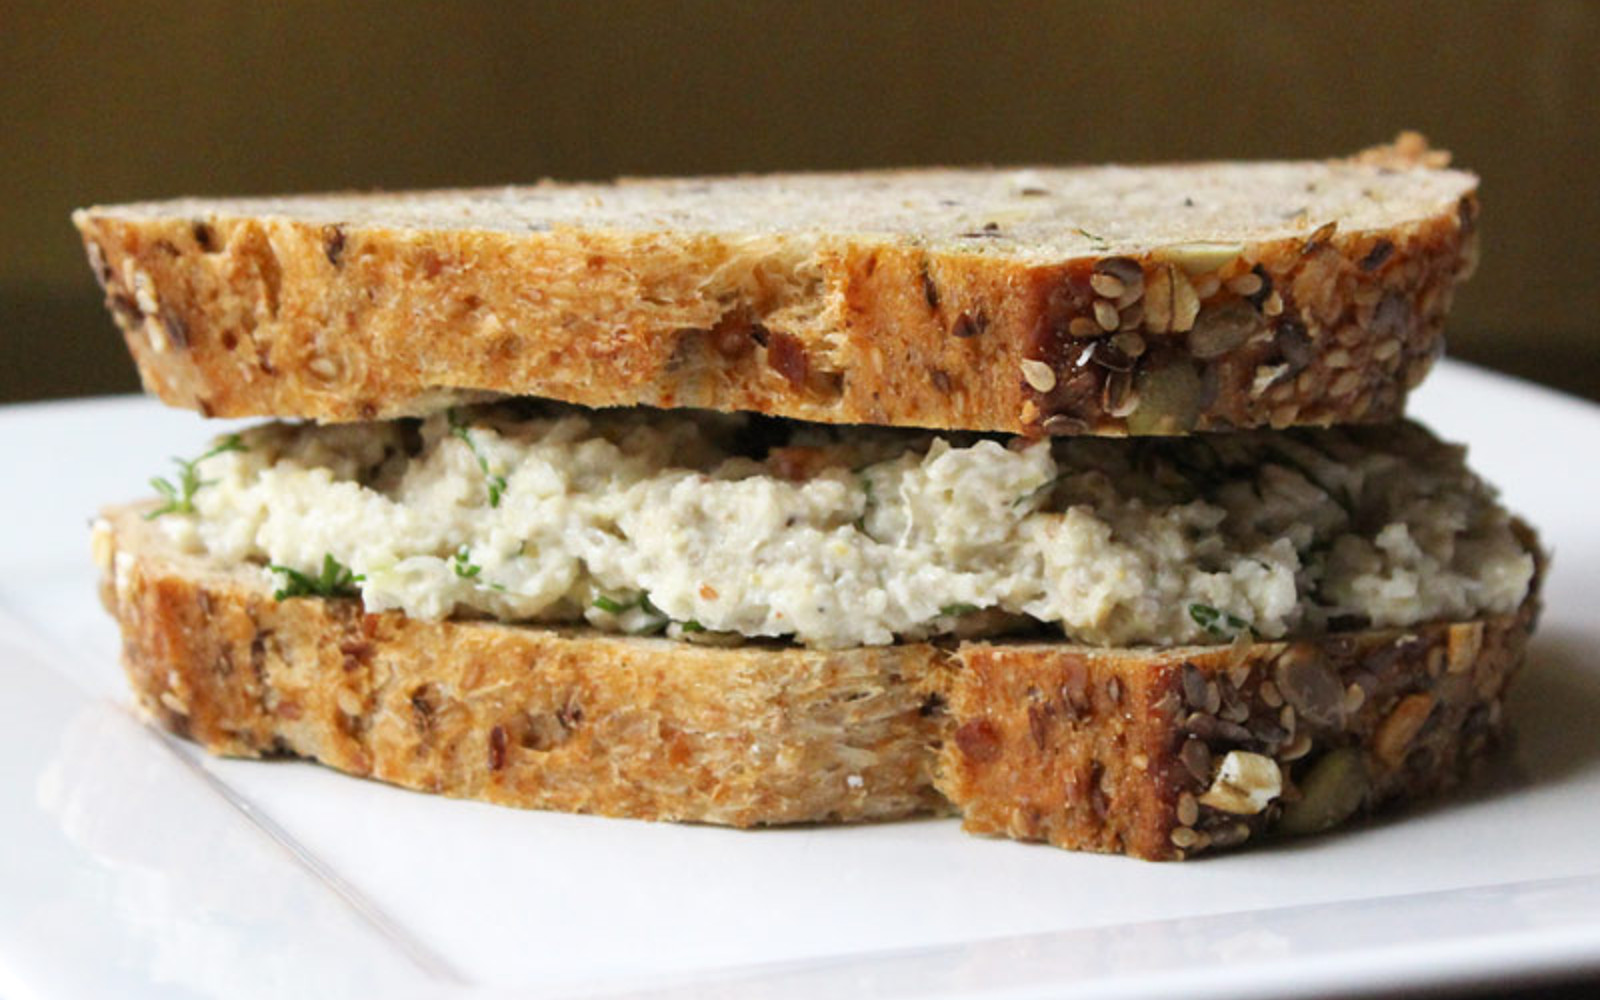 Vegan Grain-Free Sauerkraut, Sunflower Seed, and Cashew 'Tuna' Fish